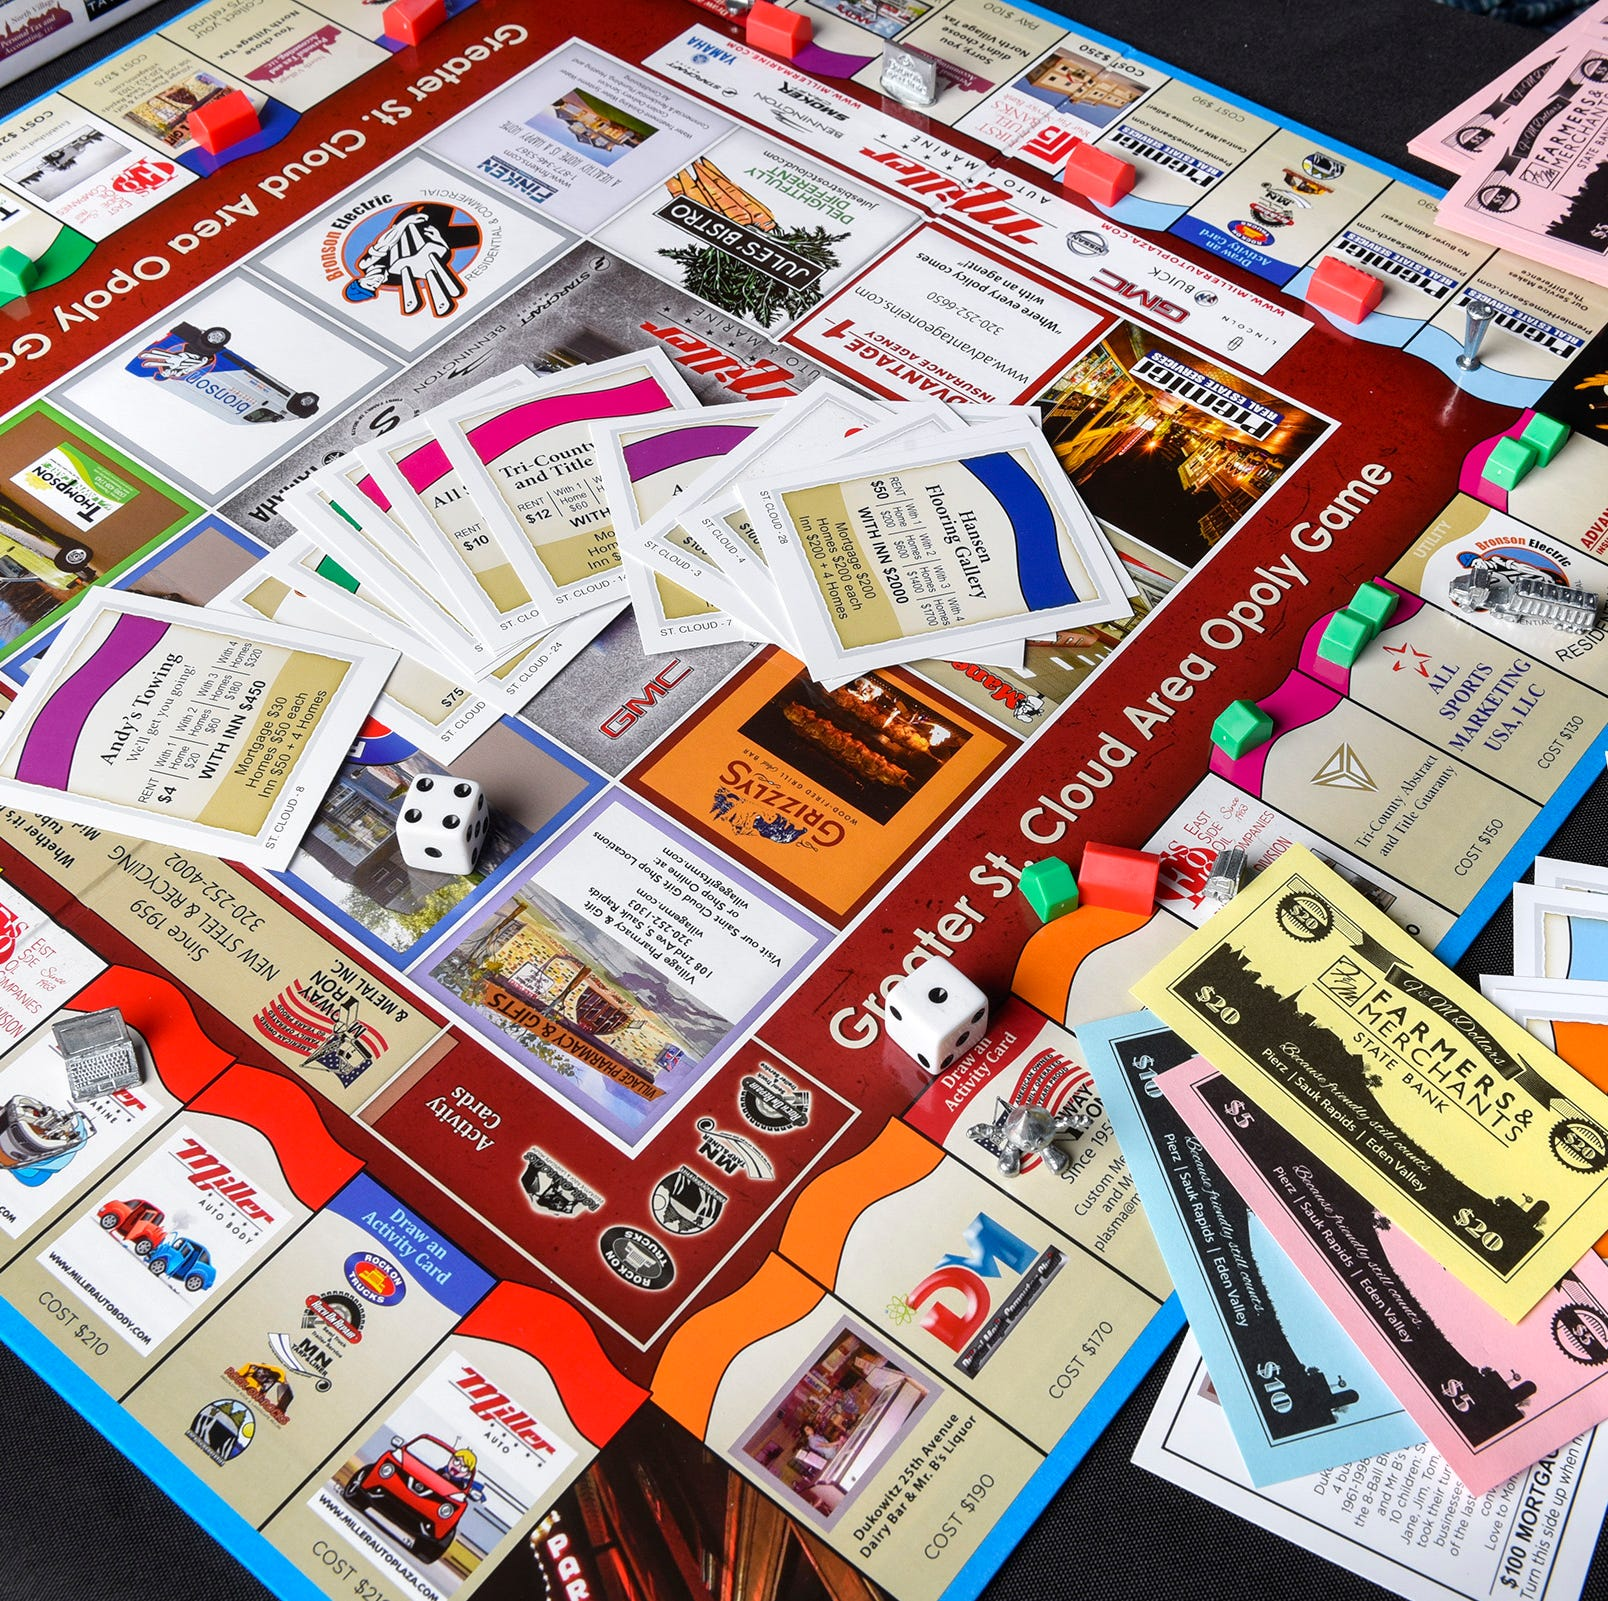 'Greater St. Cloud Area Opoly' gives players a chance to buy up local businesses